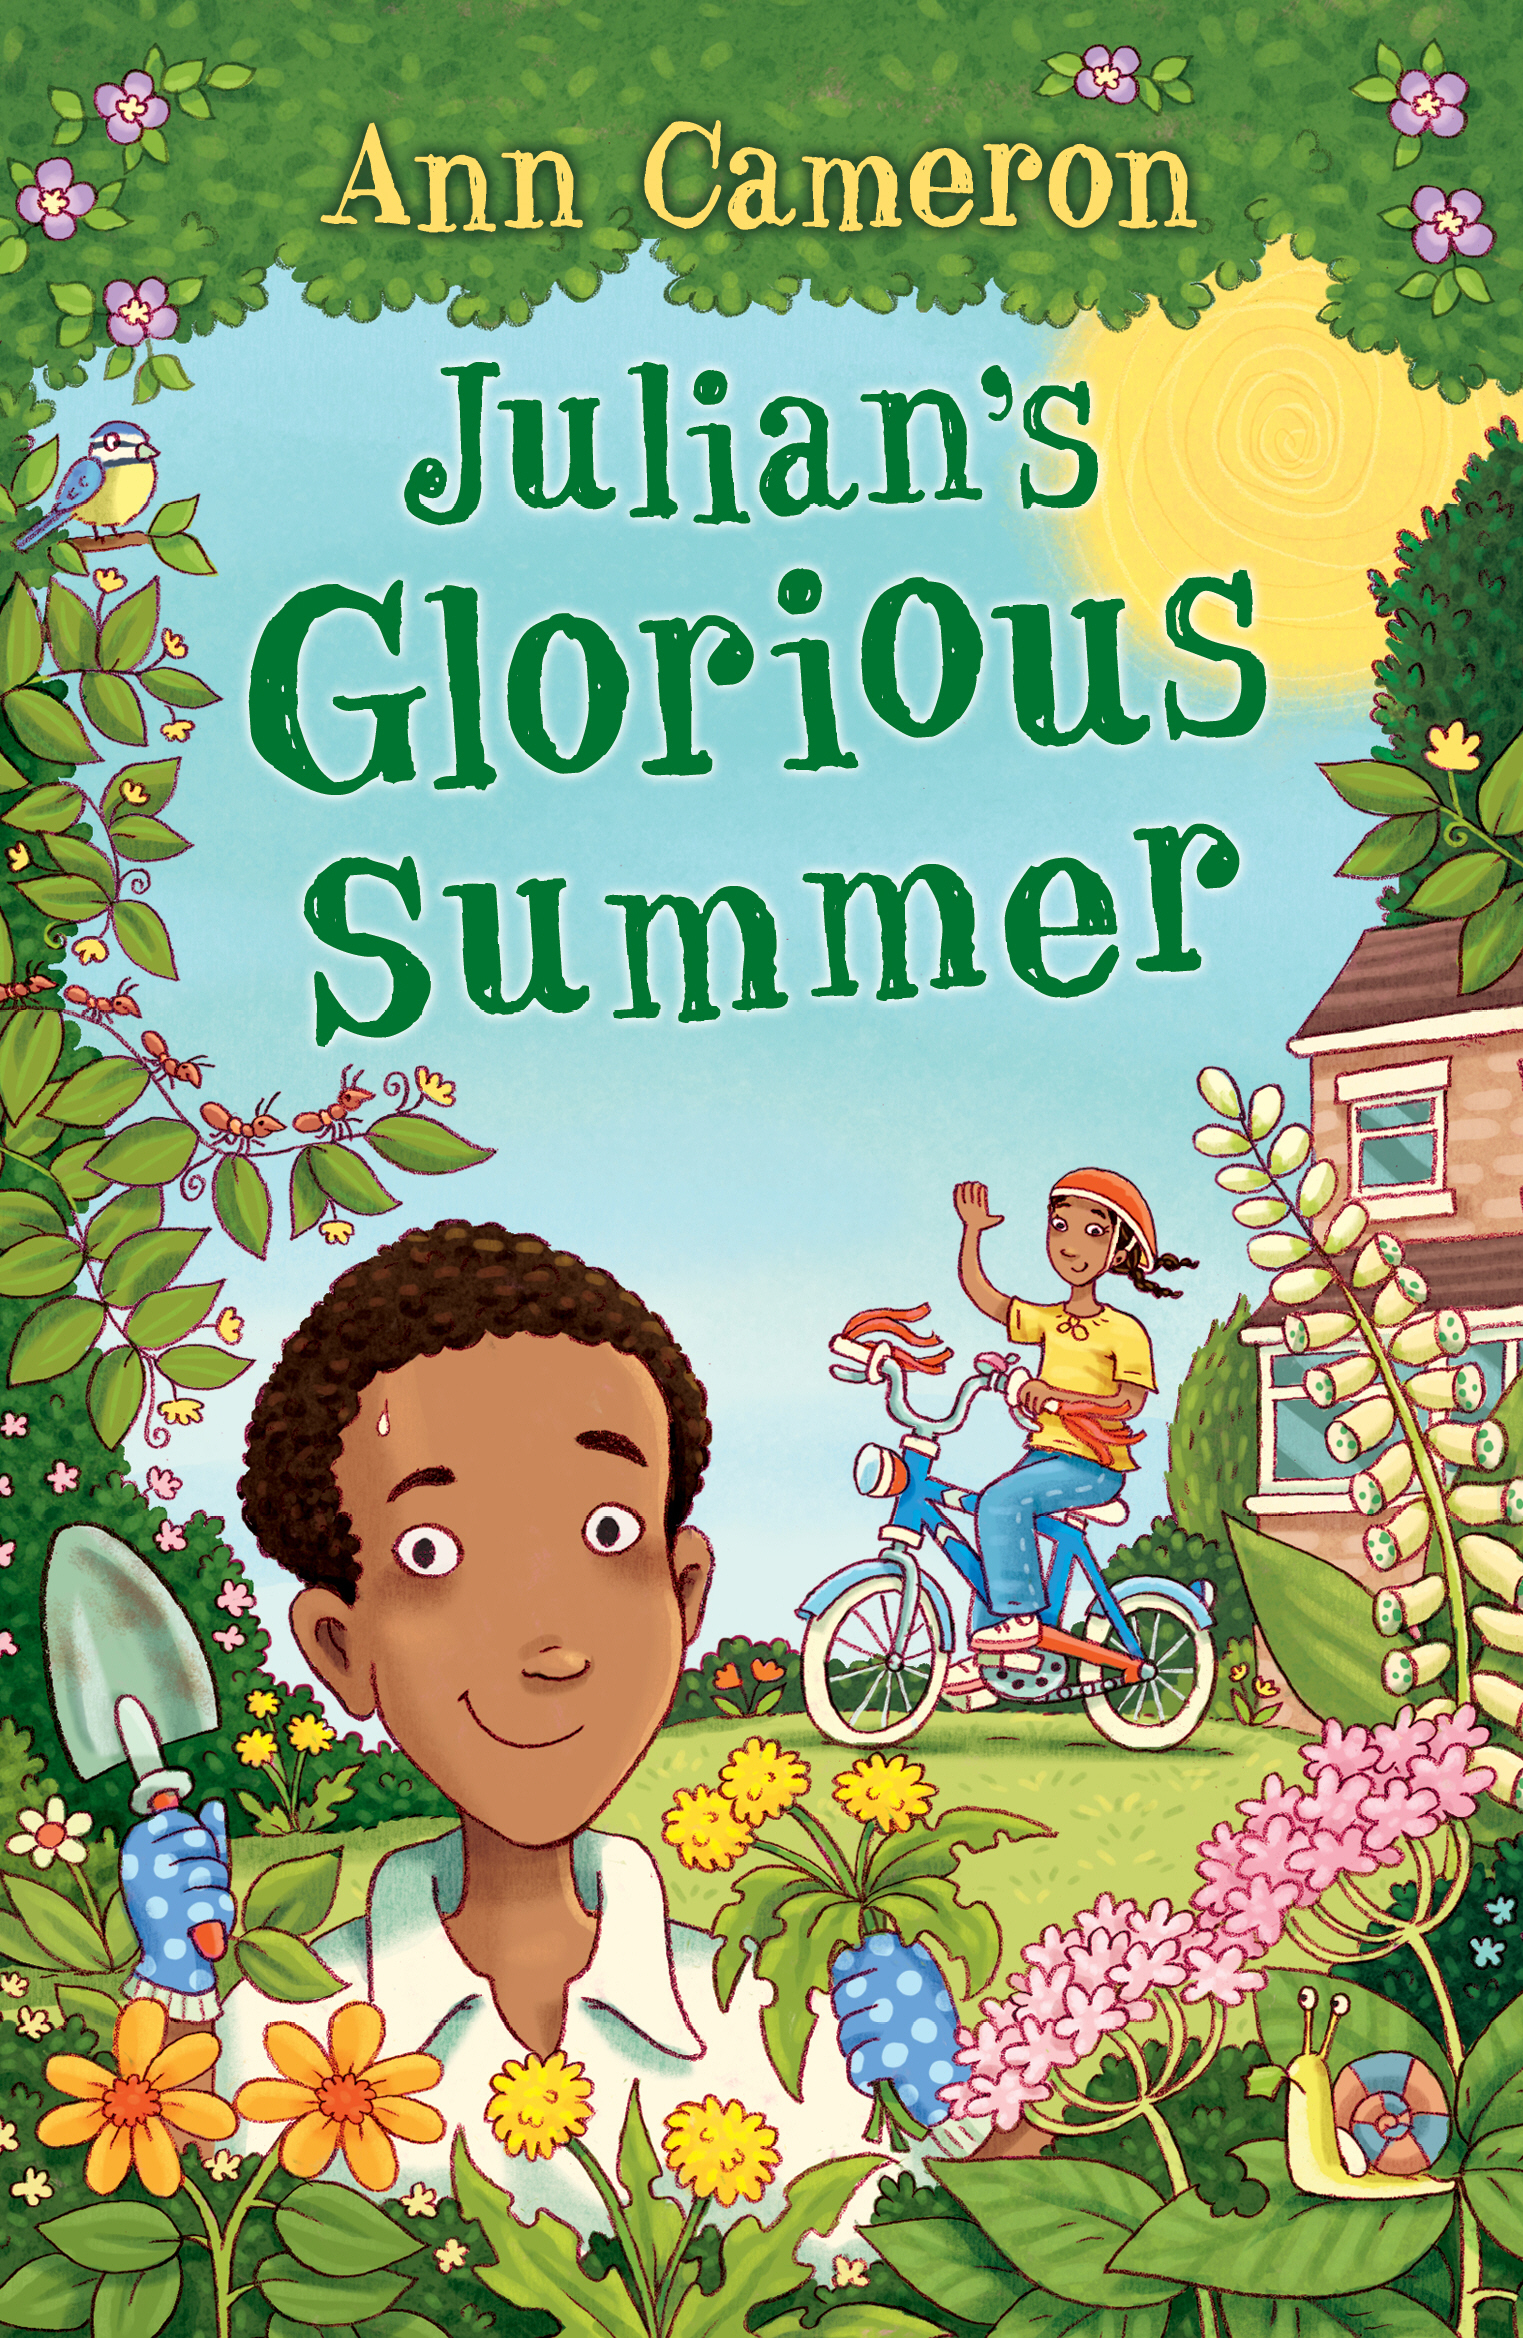 Julian's Glorious Summer